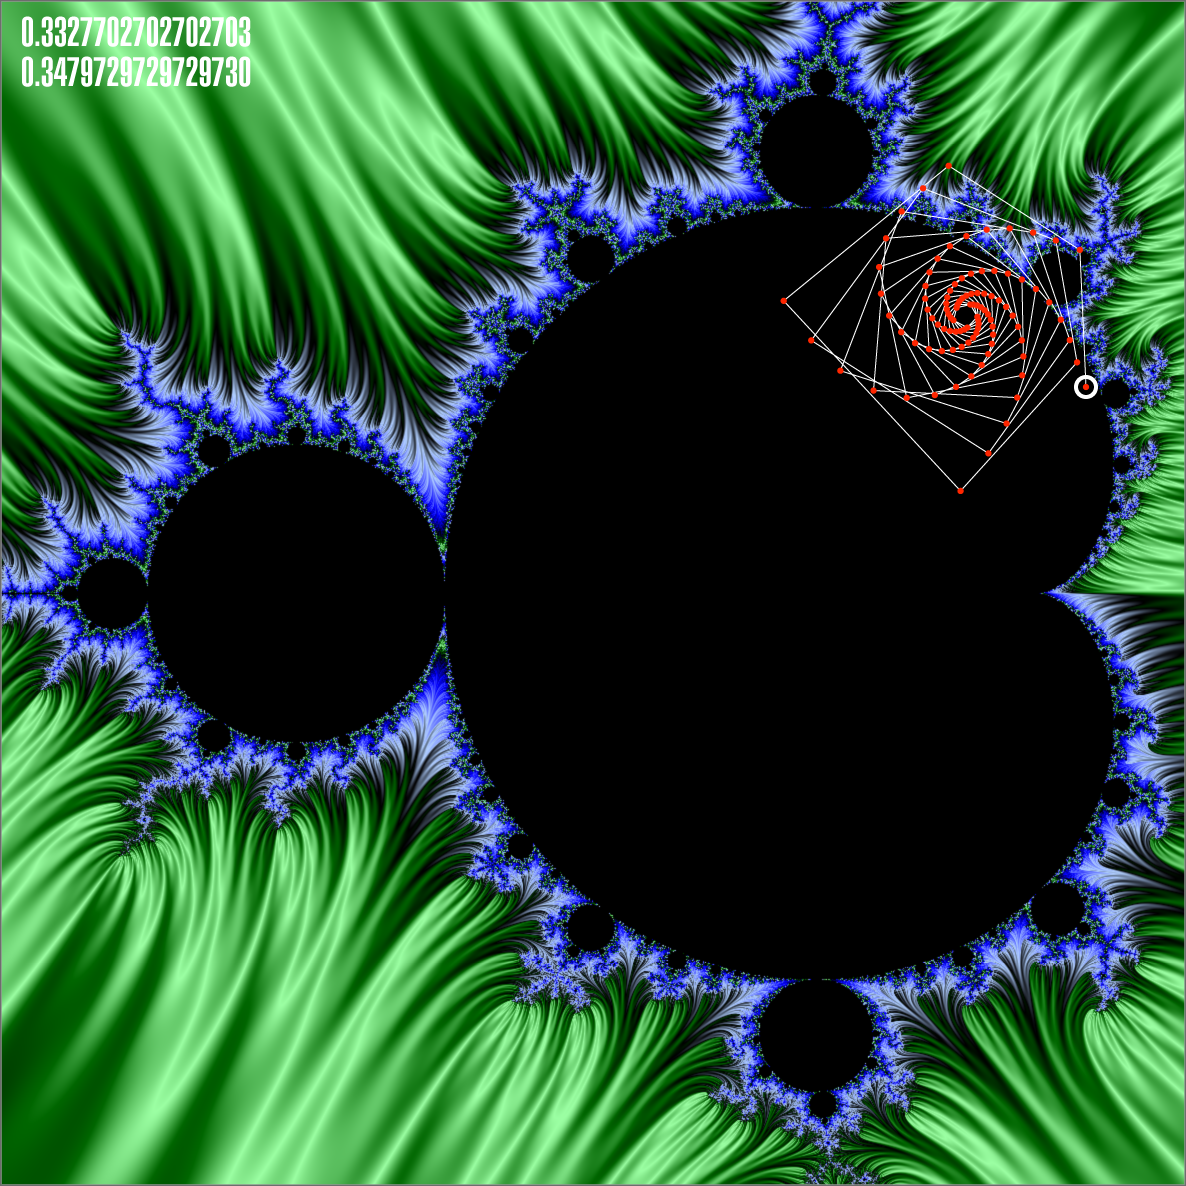 Mandelbrot Fractal Orbit Path